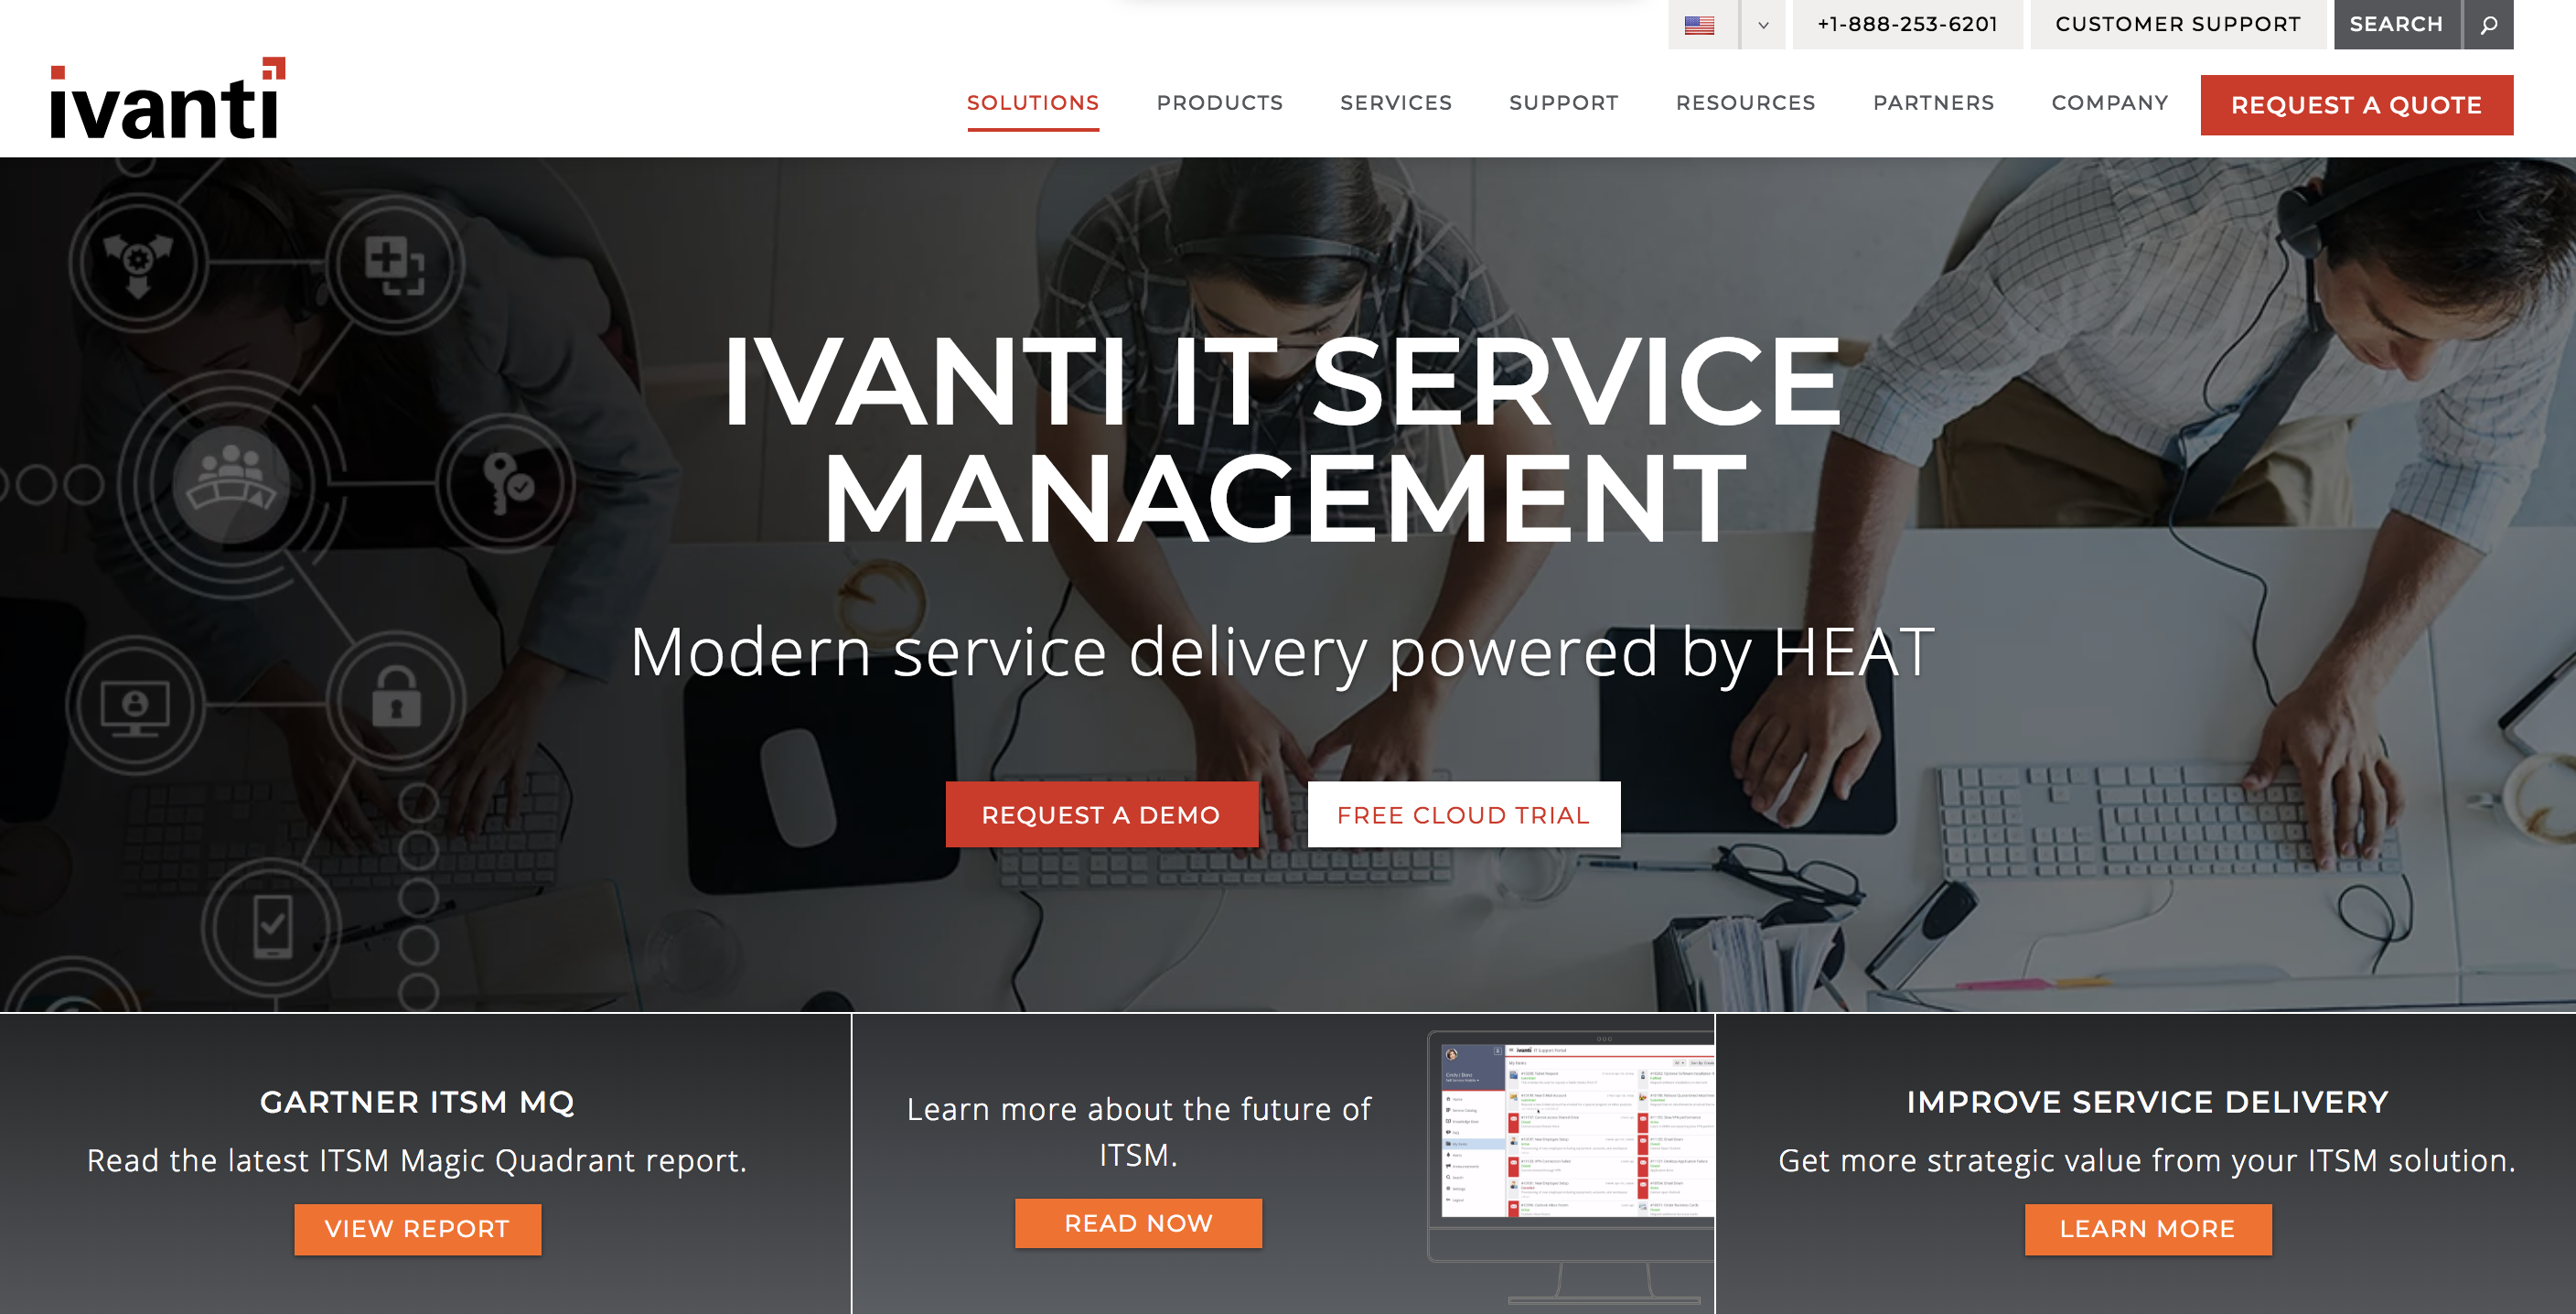 Ivanti Service Manager home page